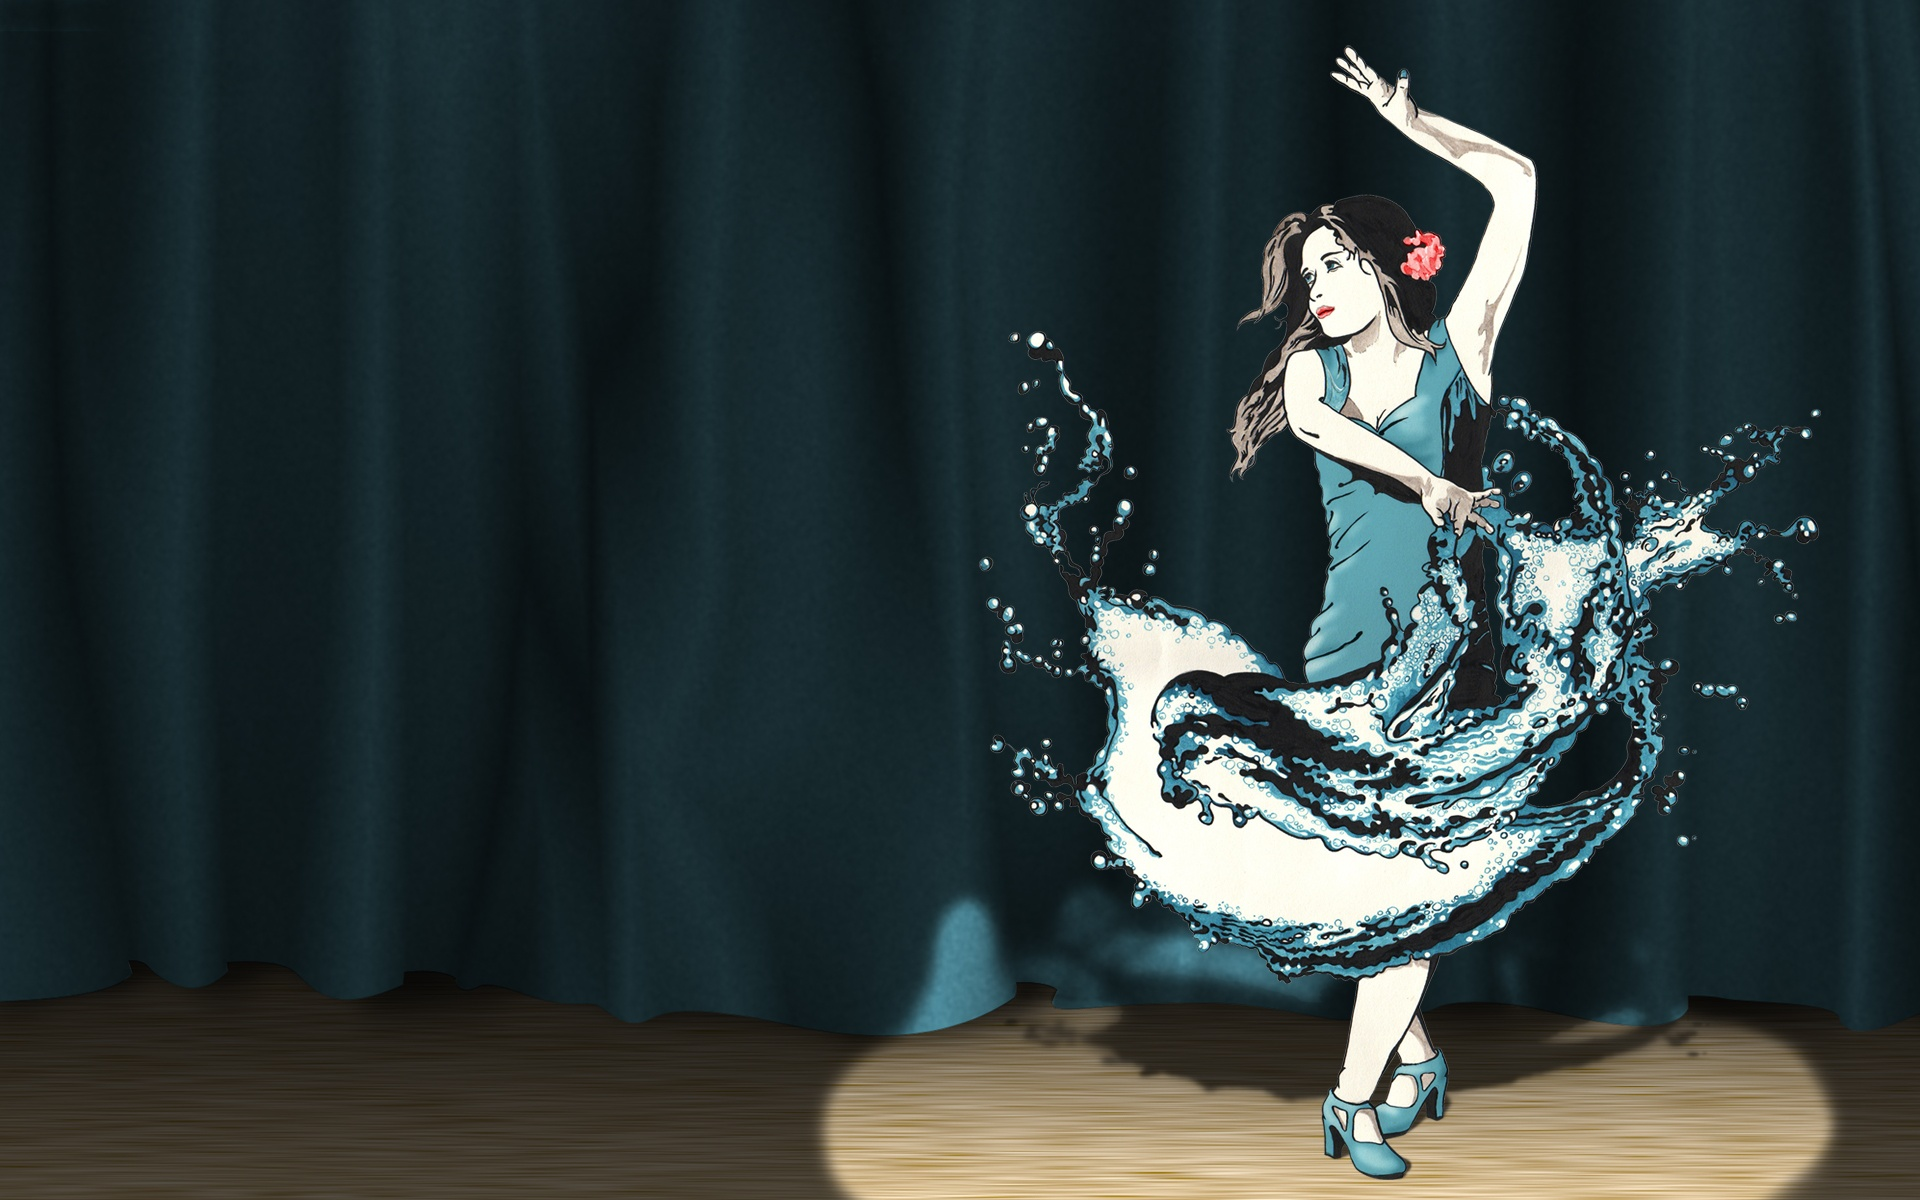 Splash Dance Wallpapers HD Wallpapers 1920x1200